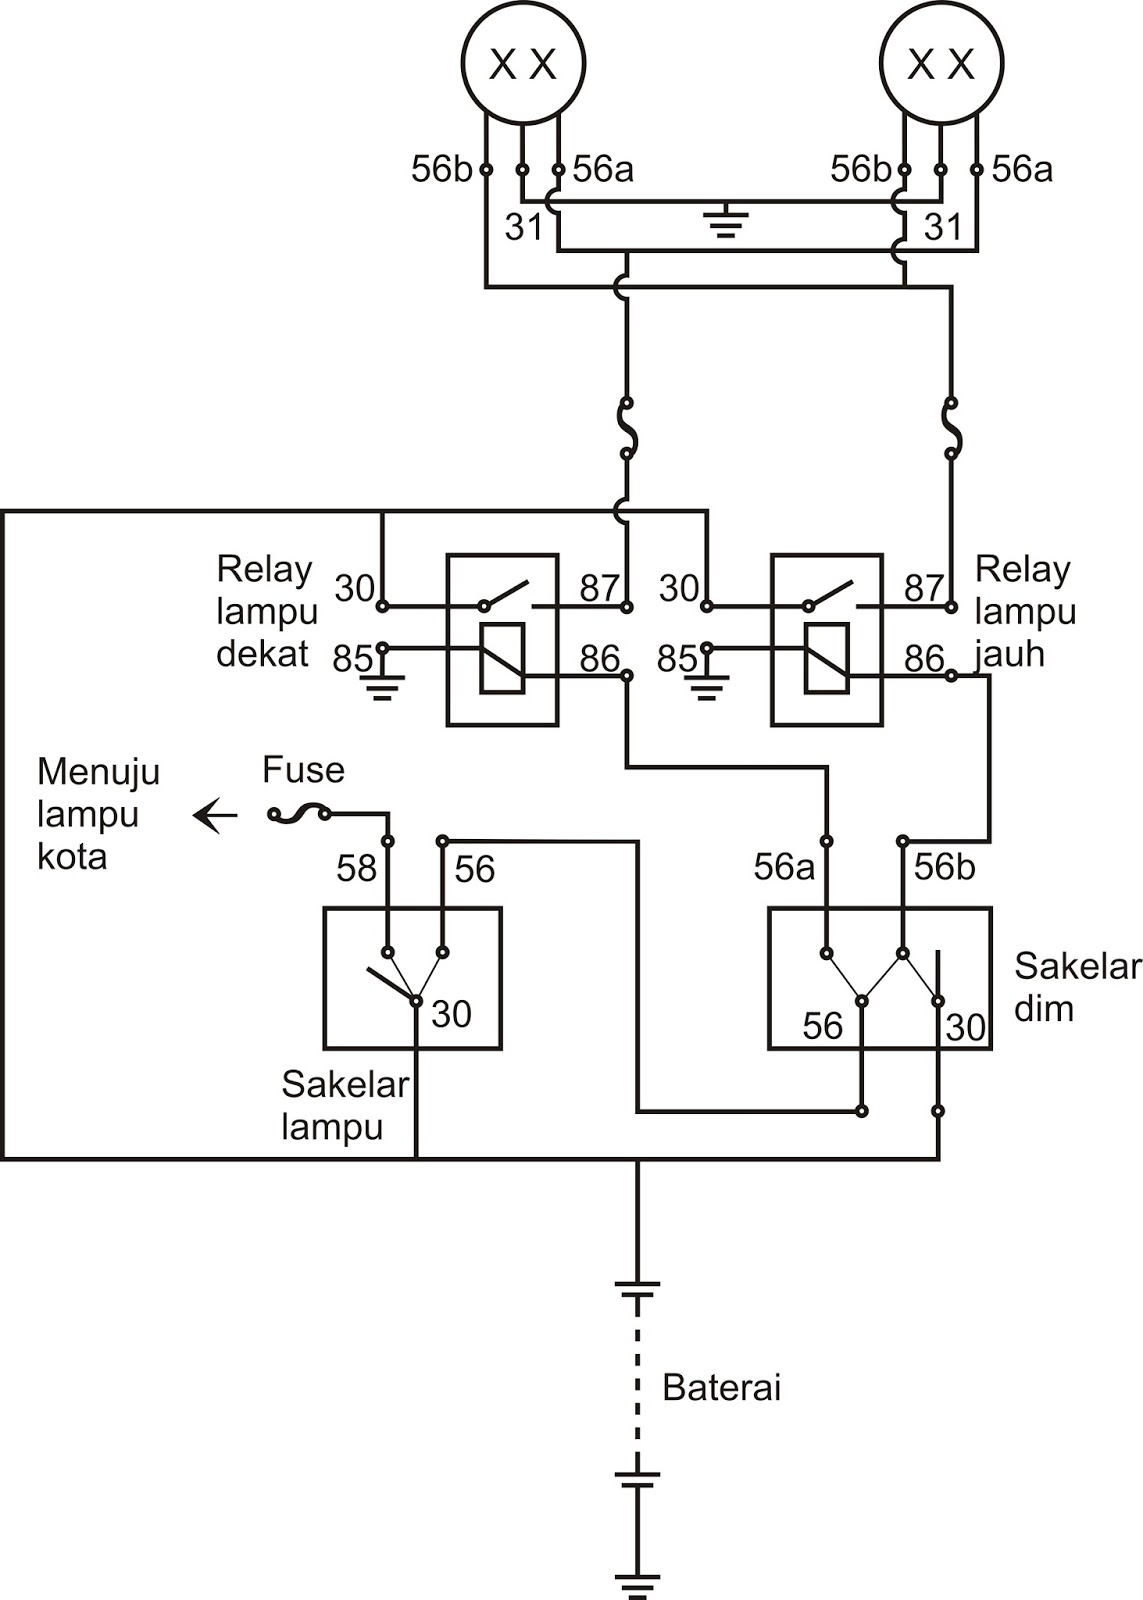 Download koleksi gambar wering diagram sistem